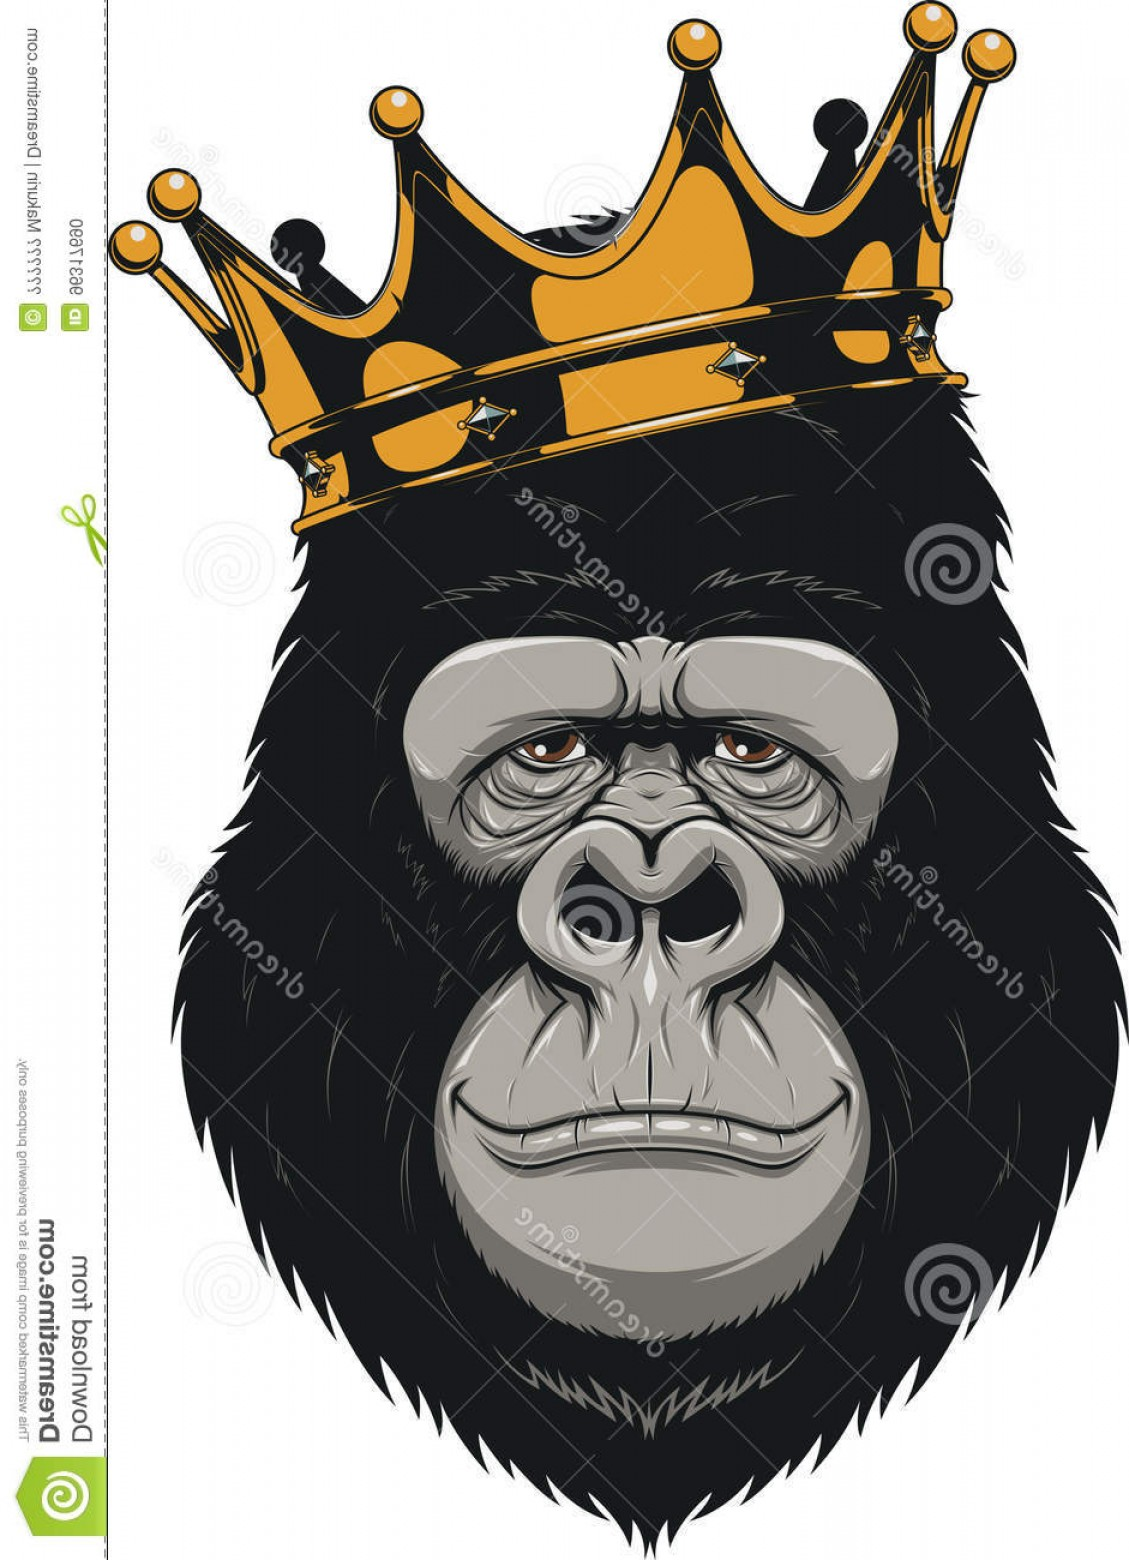 1129x1560 Stock Illustration Funny Gorilla Head Vector Illustration Crown